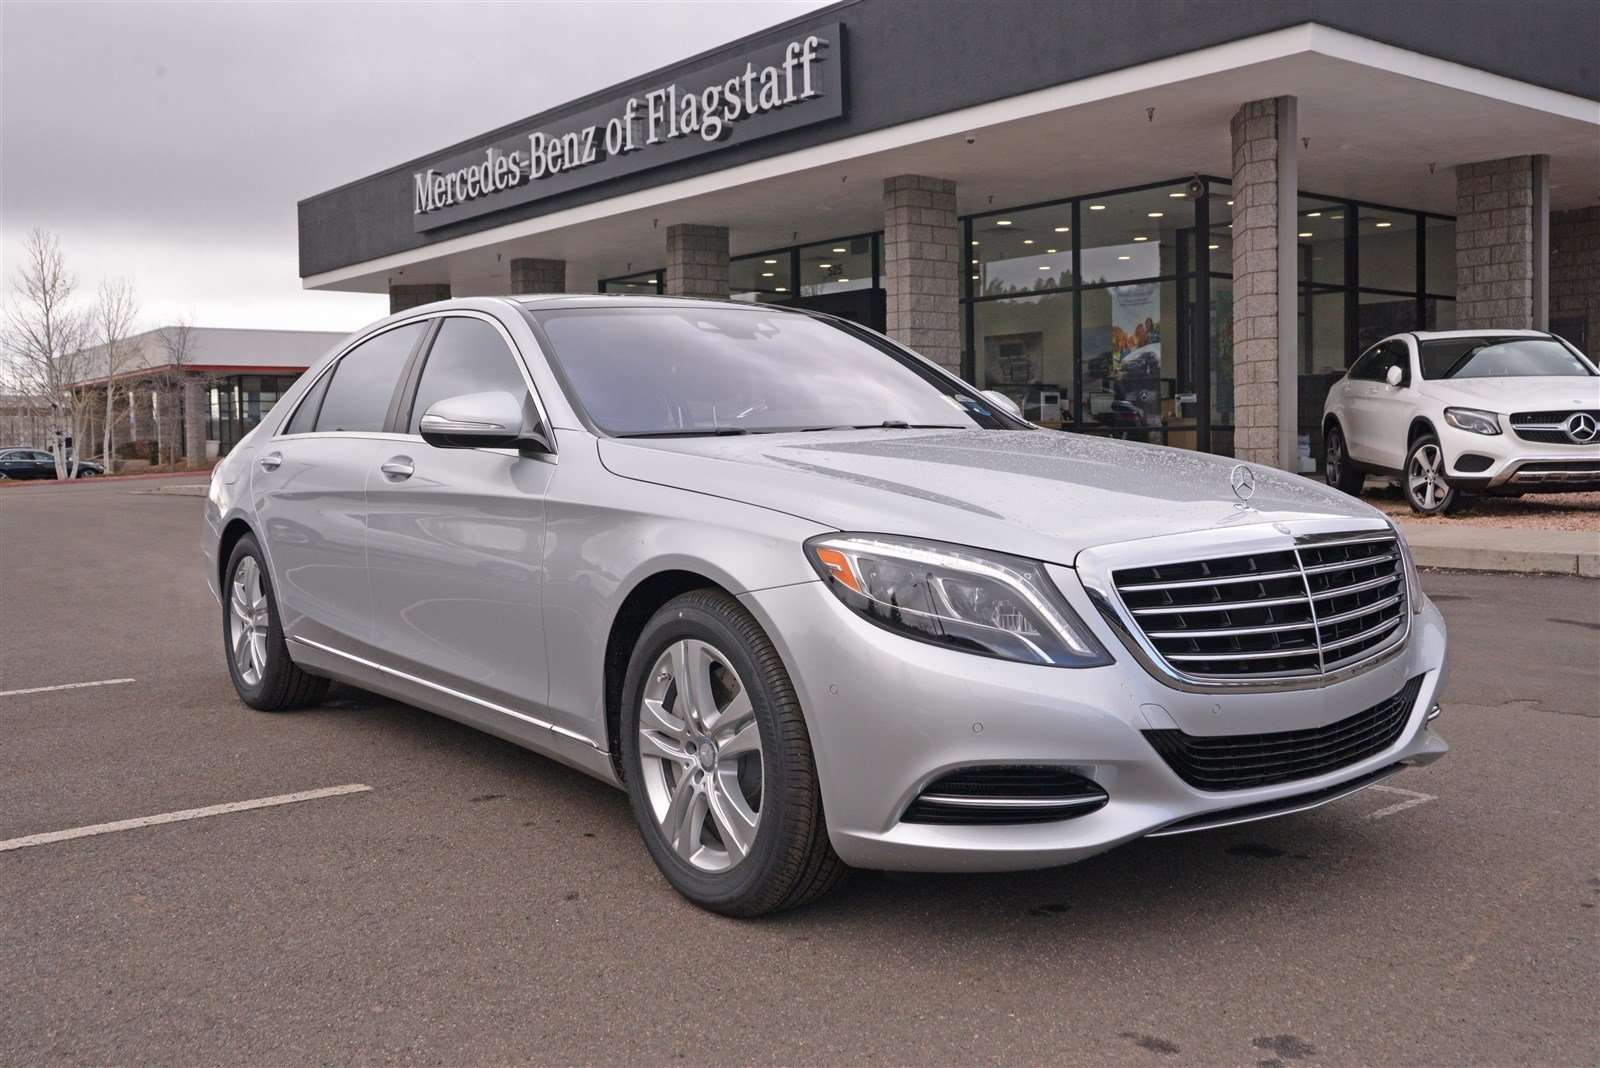 New 2017 mercedes benz s class s 550 sedan in flagstaff for Mercedes benz of flagstaff